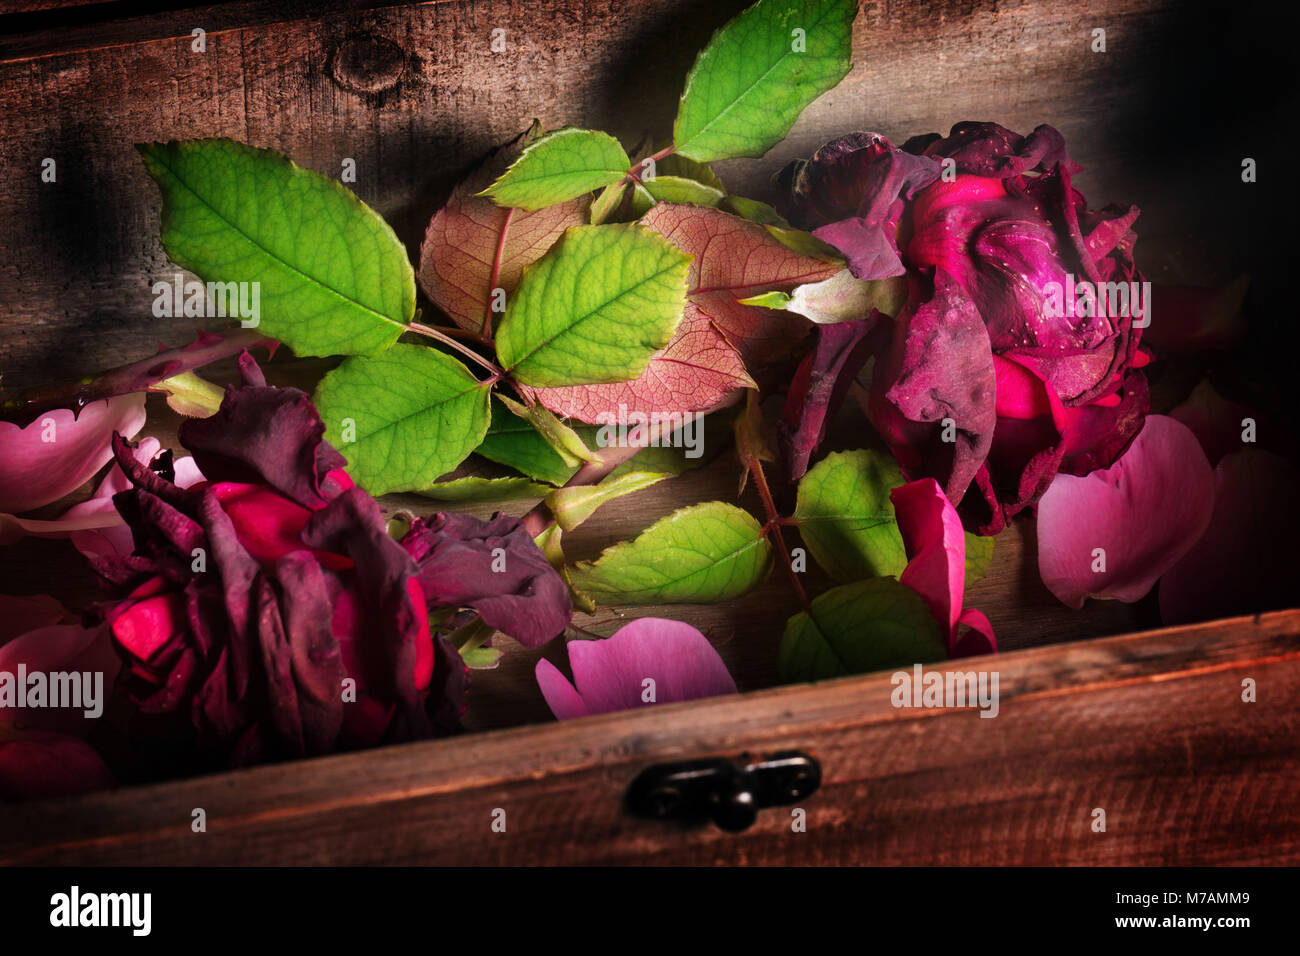 Transitoriness, fading roses - Stock Image